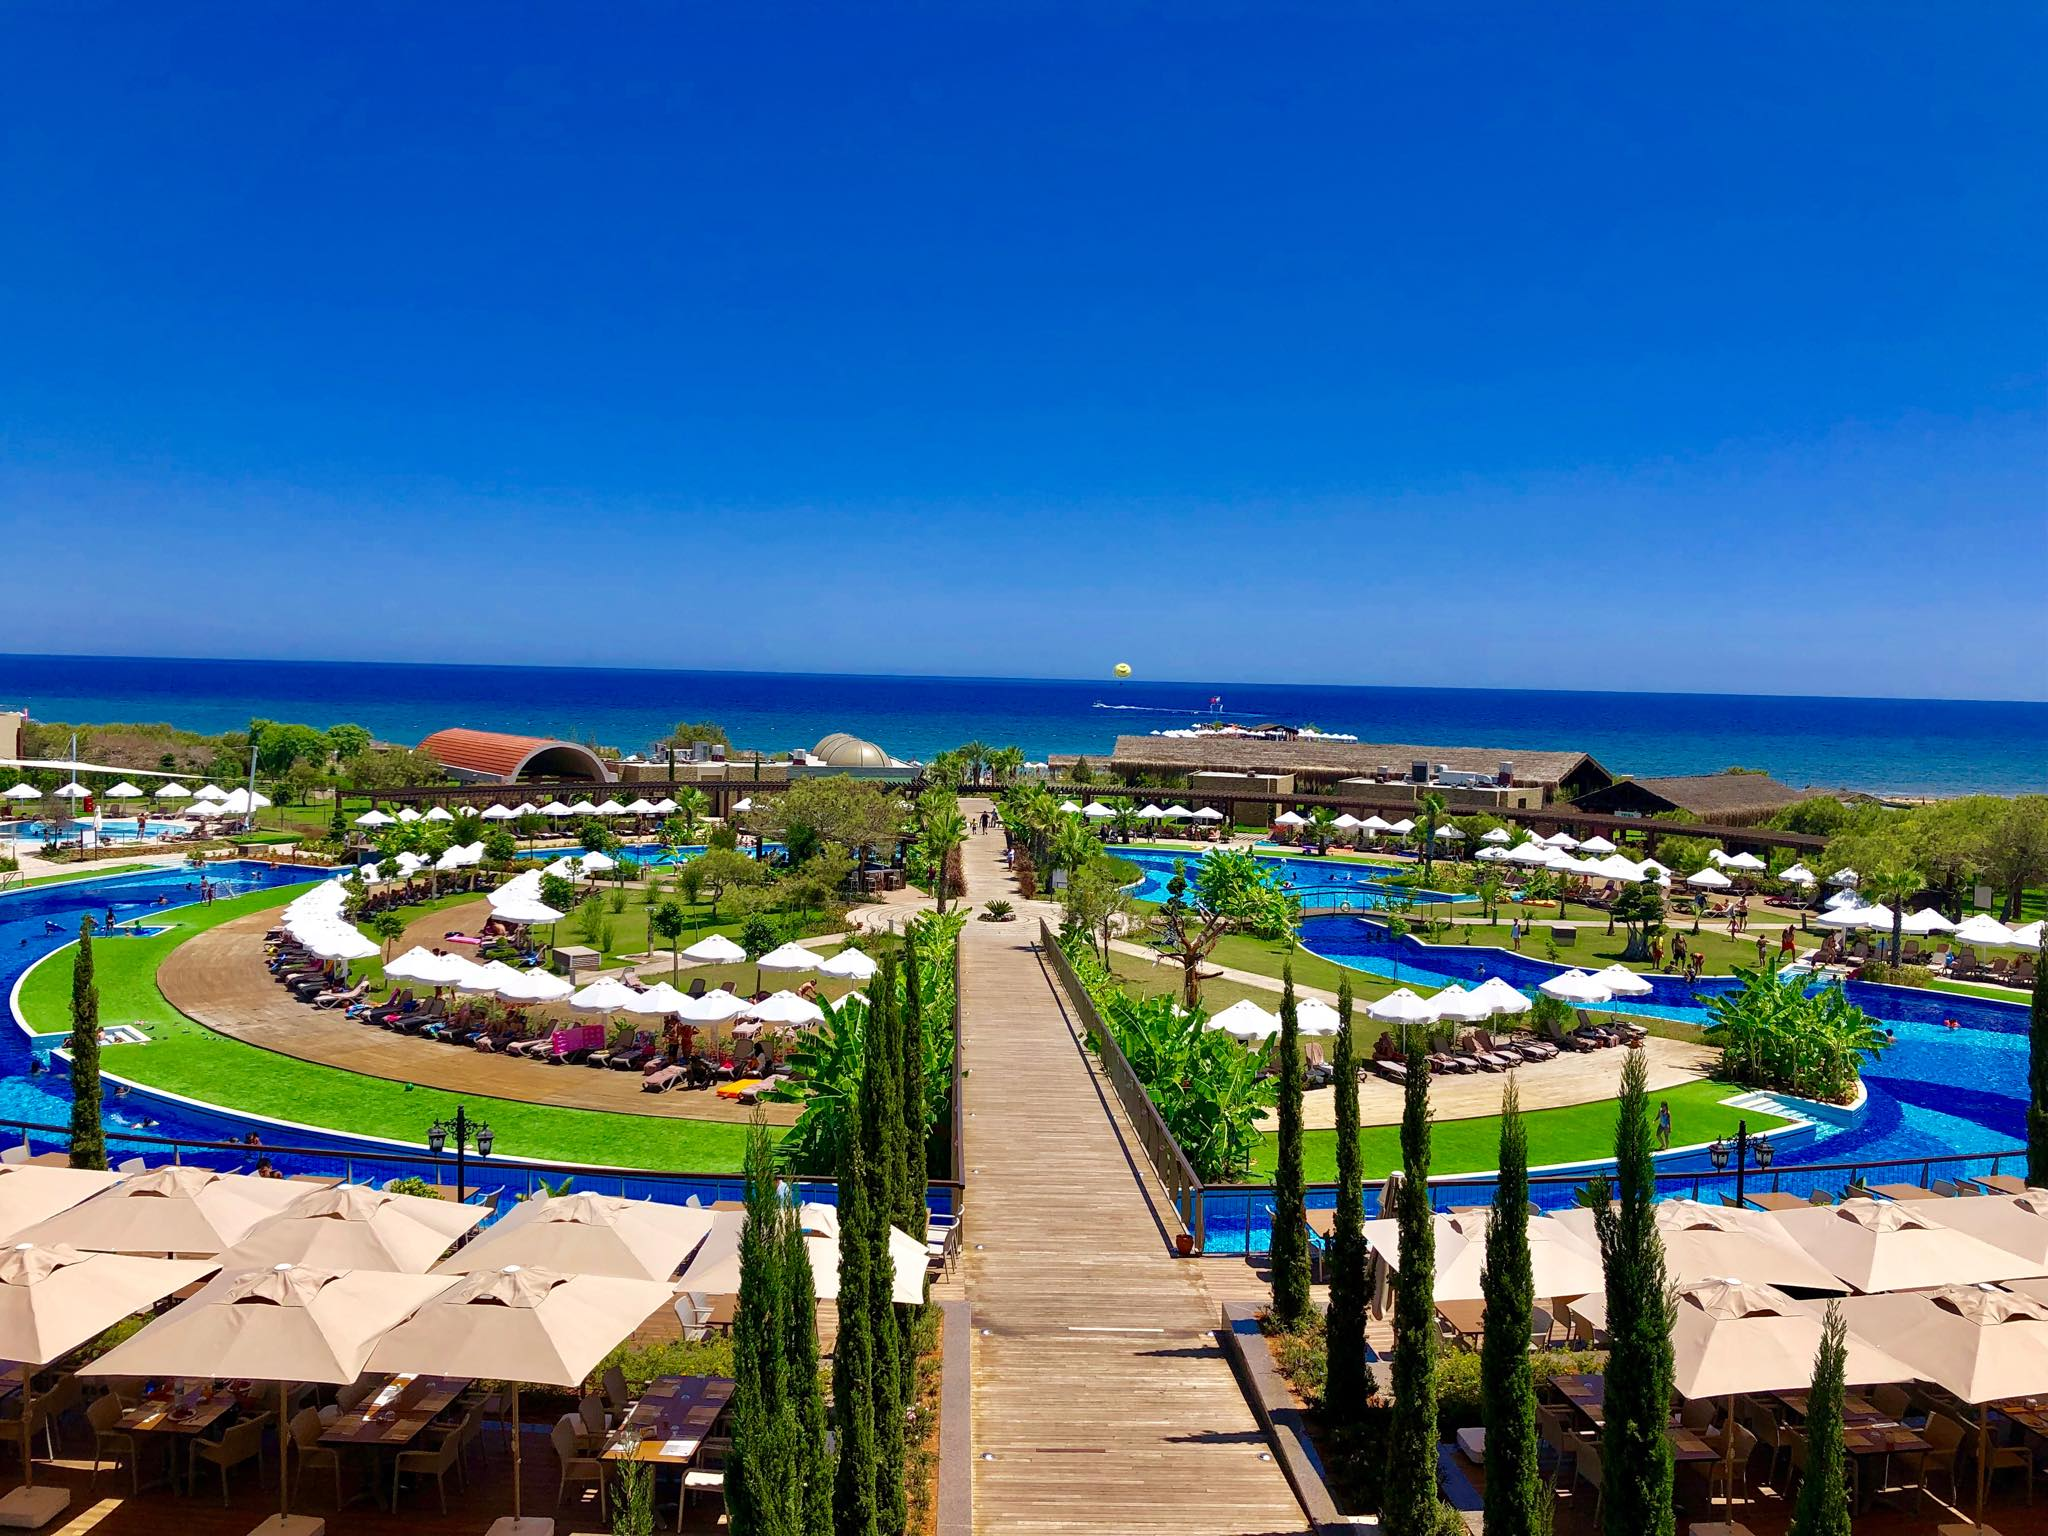 CYPR - LATO 2020: Concorde Luxury Resort*****, 8 dni (02-09.06.2020 r.), ultra all inclusive: 2989,00 PLN/os. dorosła